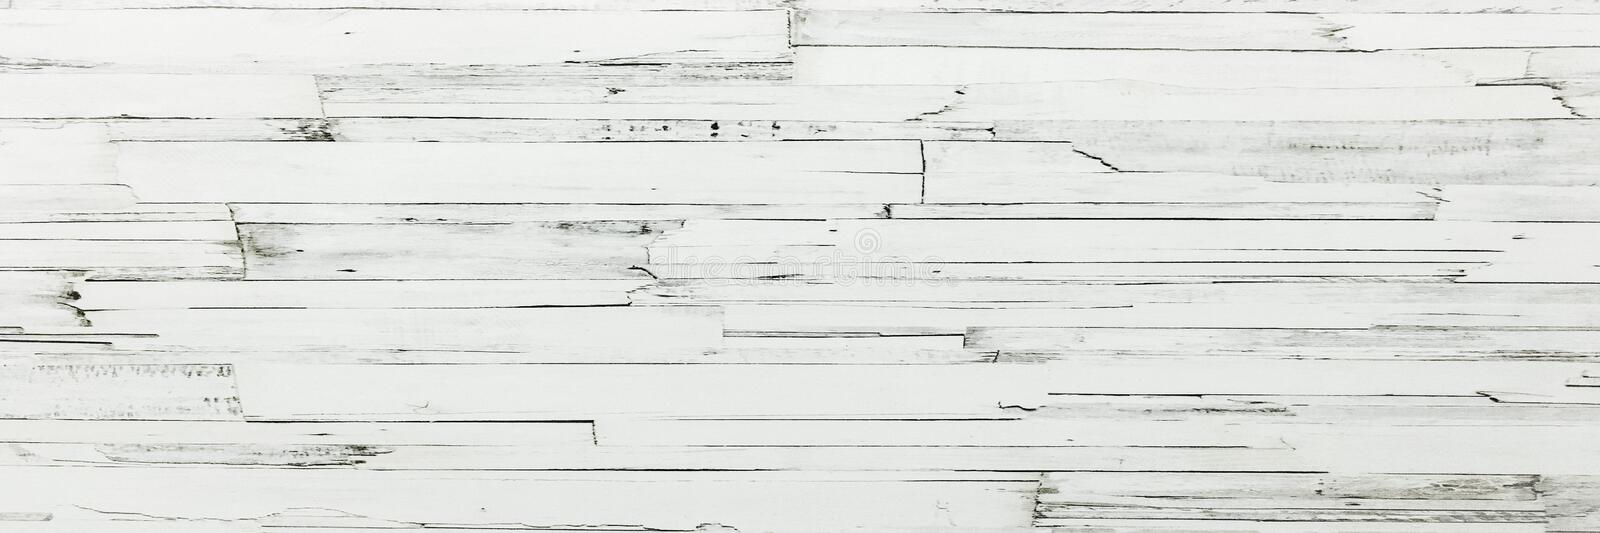 Wood texture background, wood planks. Grunge wood, painted wooden wall pattern. Wood texture background, wood planks. Grunge wood, painted wooden wall pattern royalty free stock images